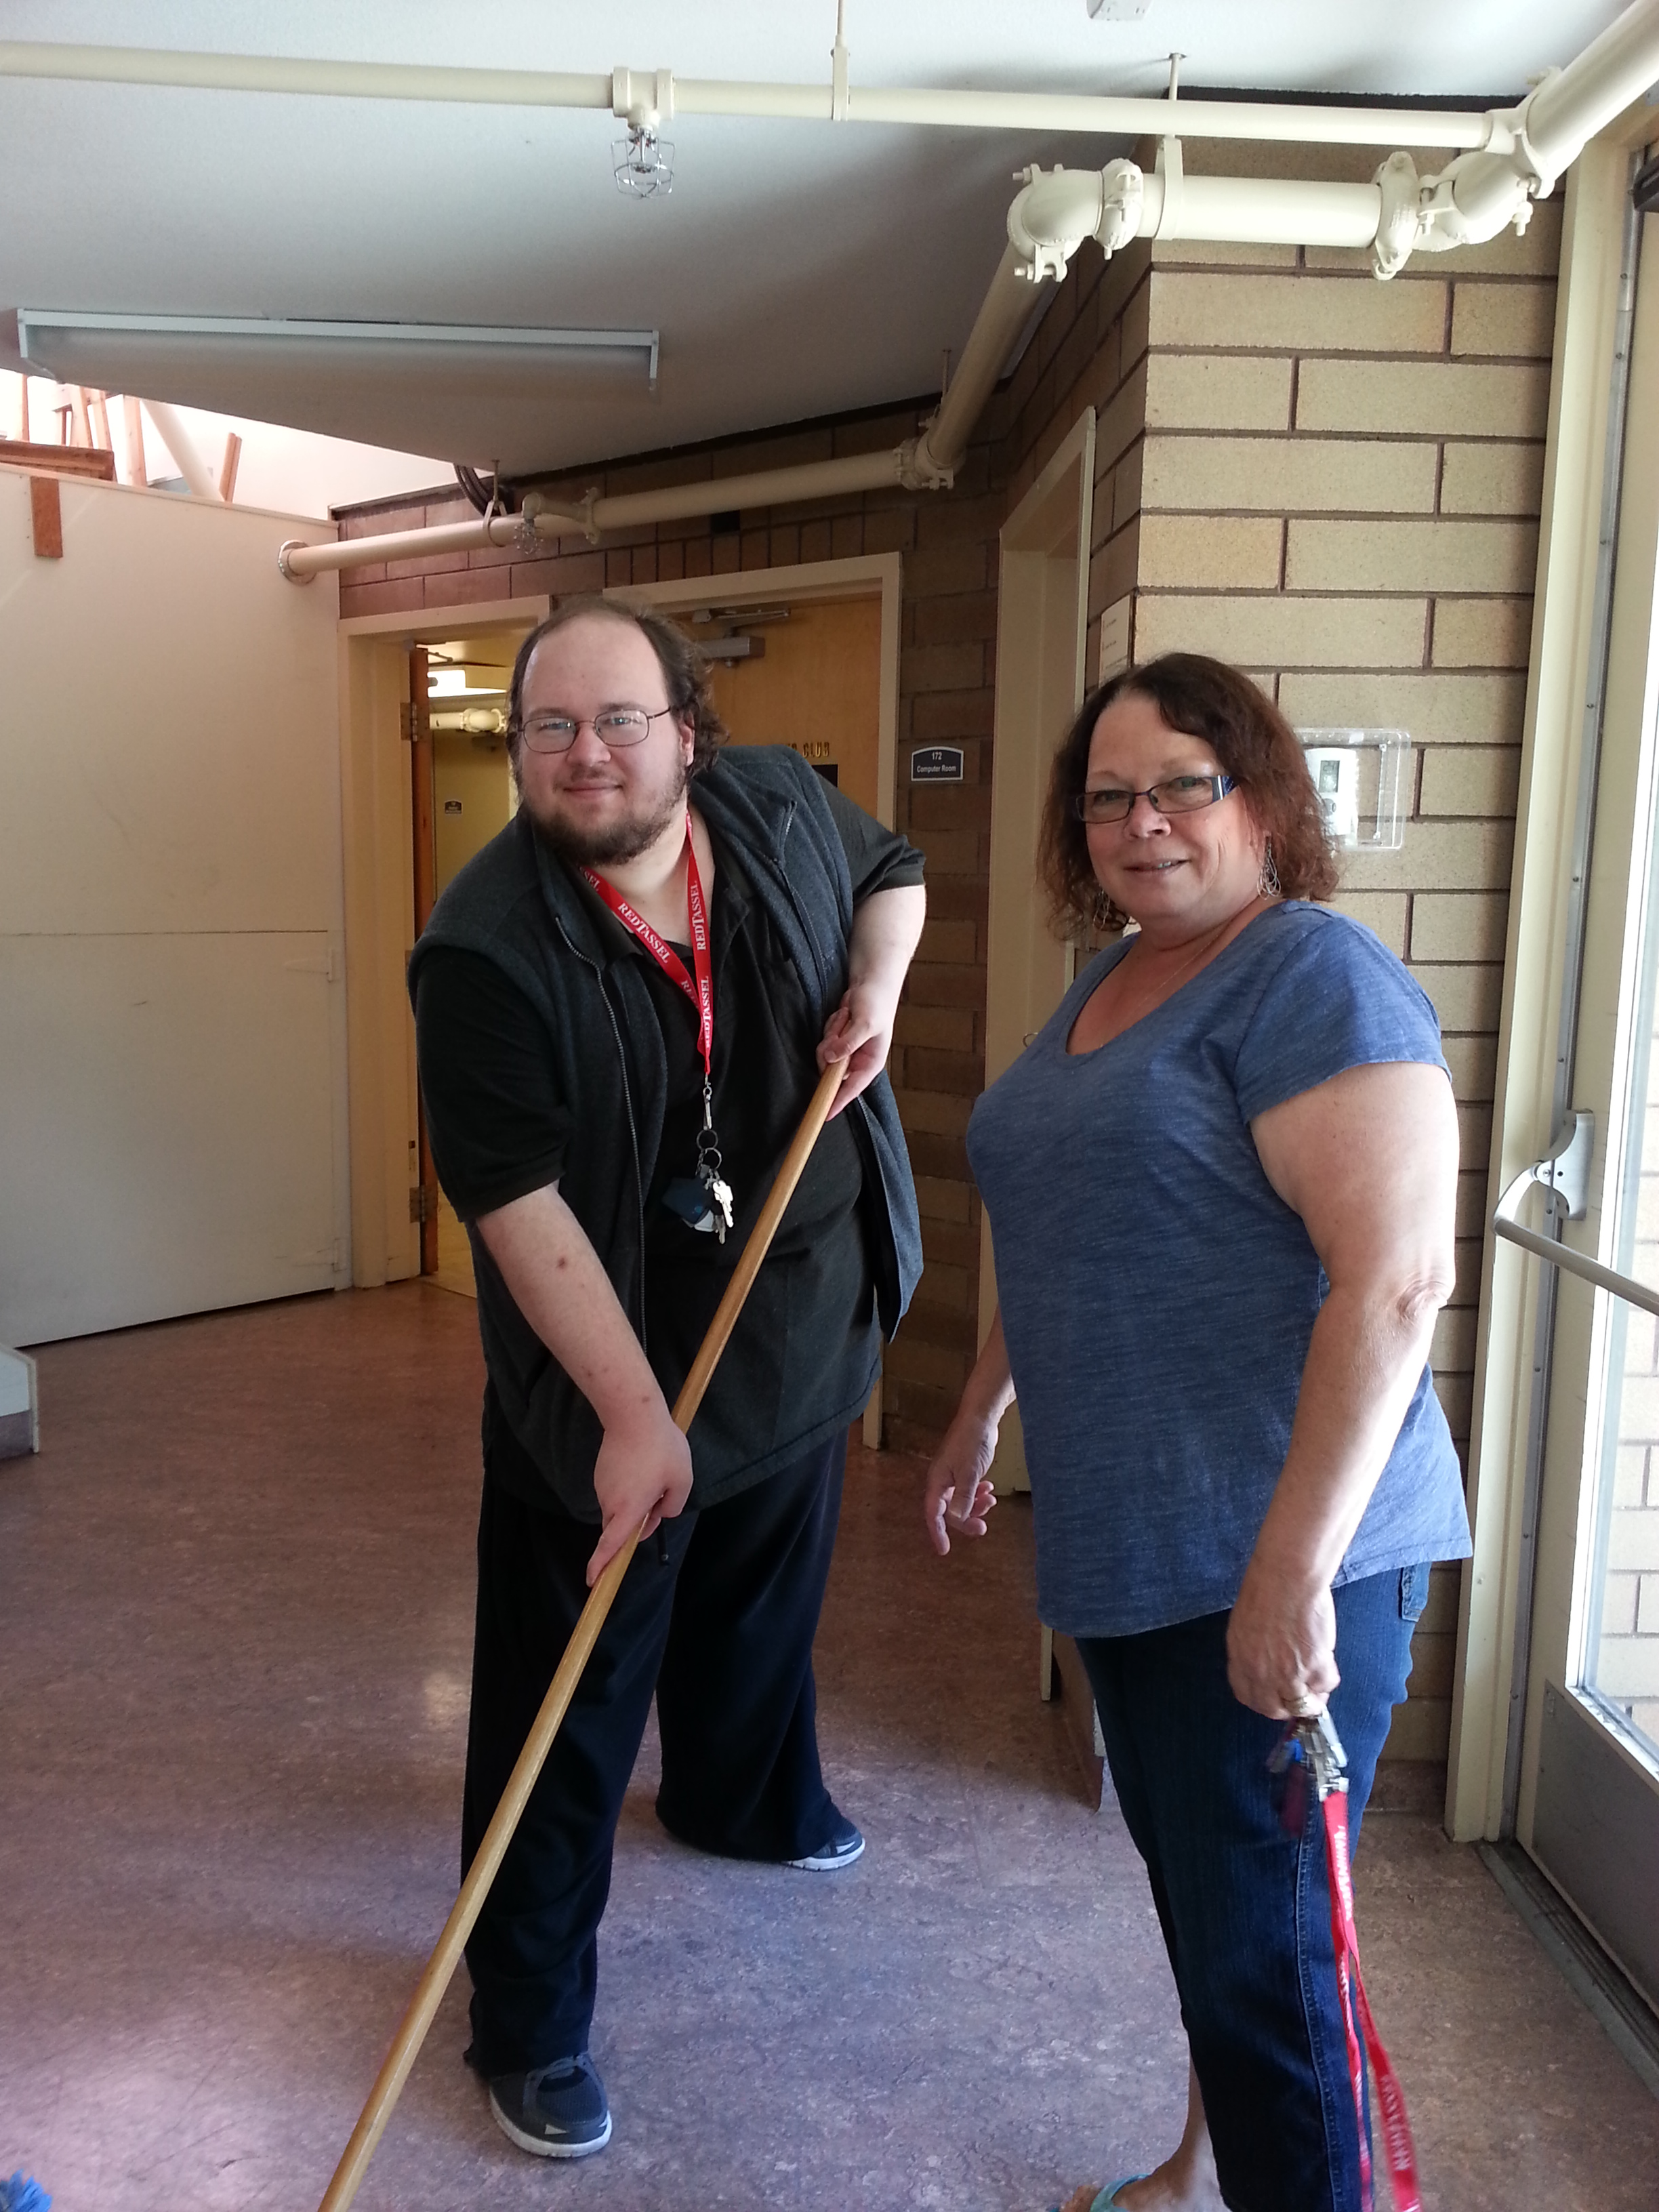 Working Together client Kyle with Tina Whiles, a Penticton and District Society for Community Living vocational counsellor